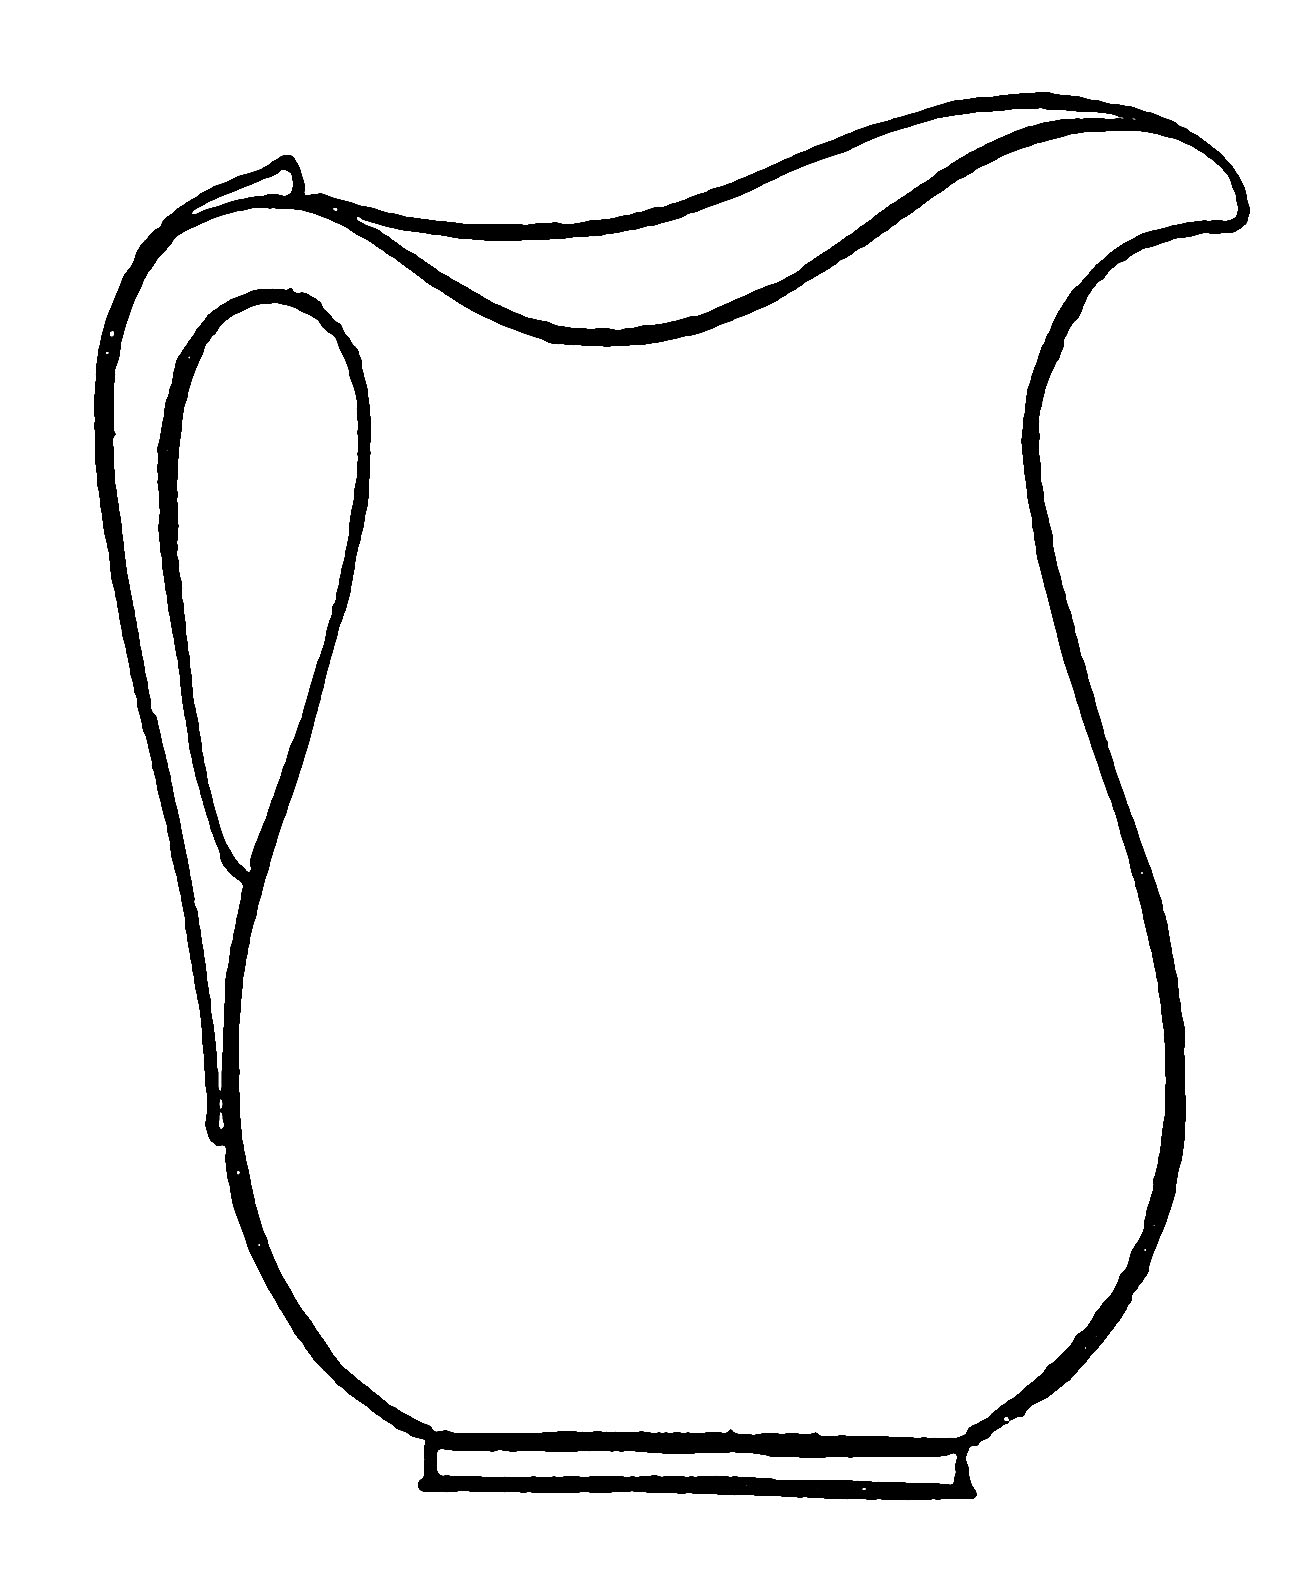 j for jug coloring pages - photo #18